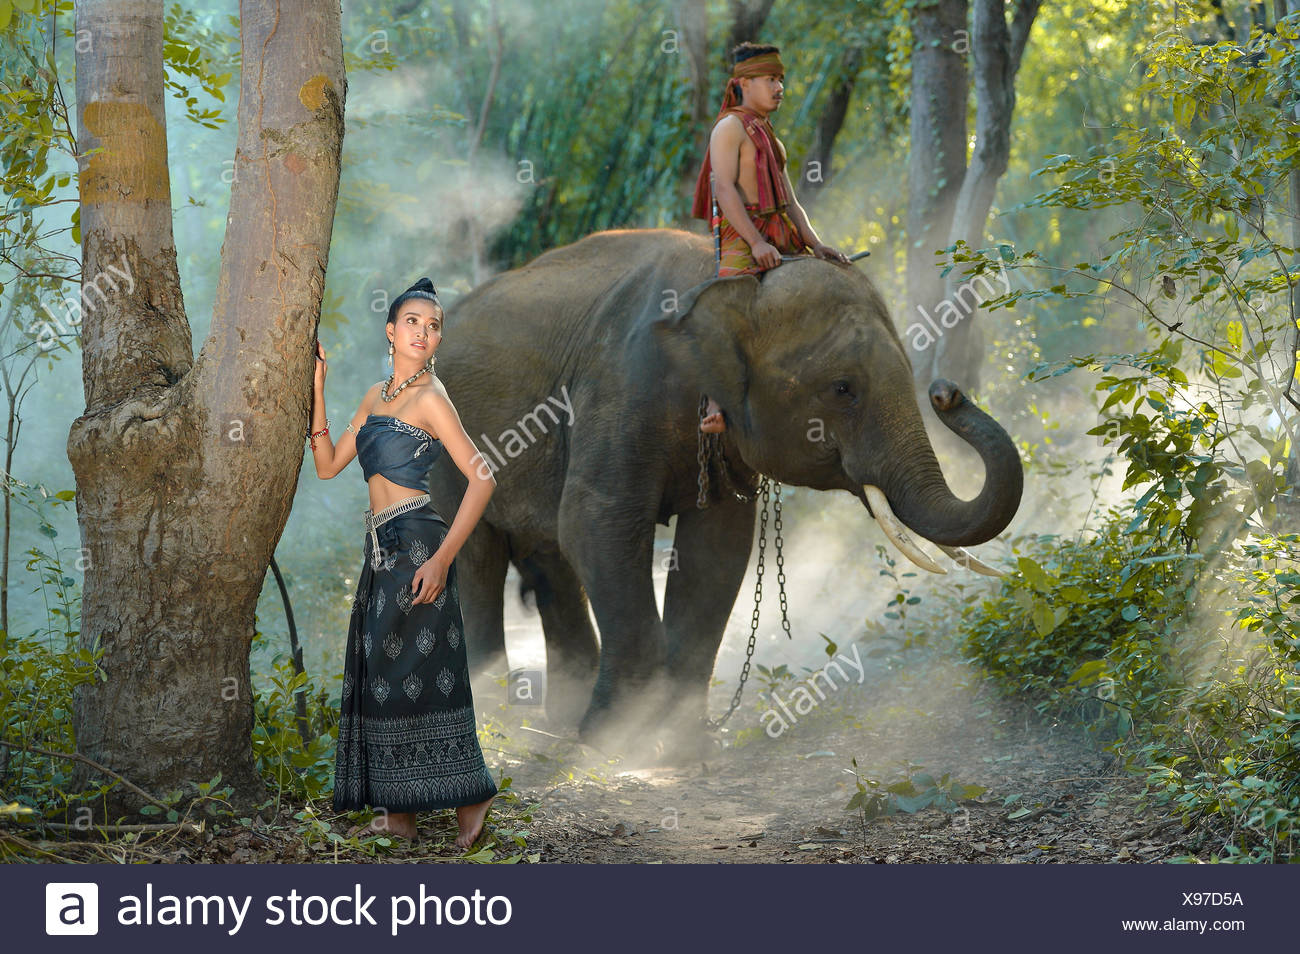 Beautiful nude woman riding an elephant